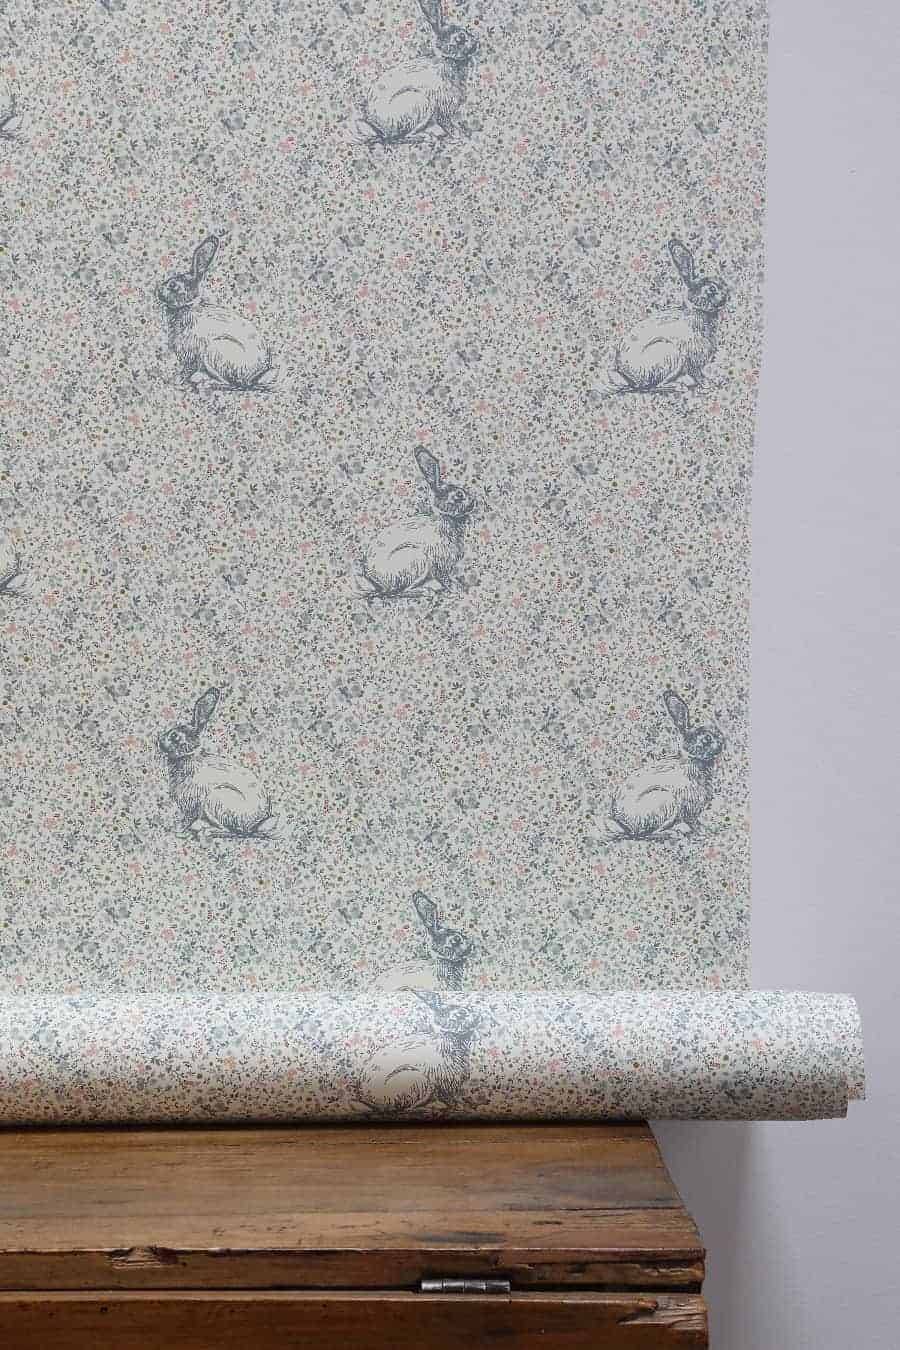 love this bunny rabbit floral little girl wallpaper by peony and sage the perfect pretty floral country little girl bedroom wallpaper made in England. Click through for more beautiful wallpaper ideas you'll love to try in your home